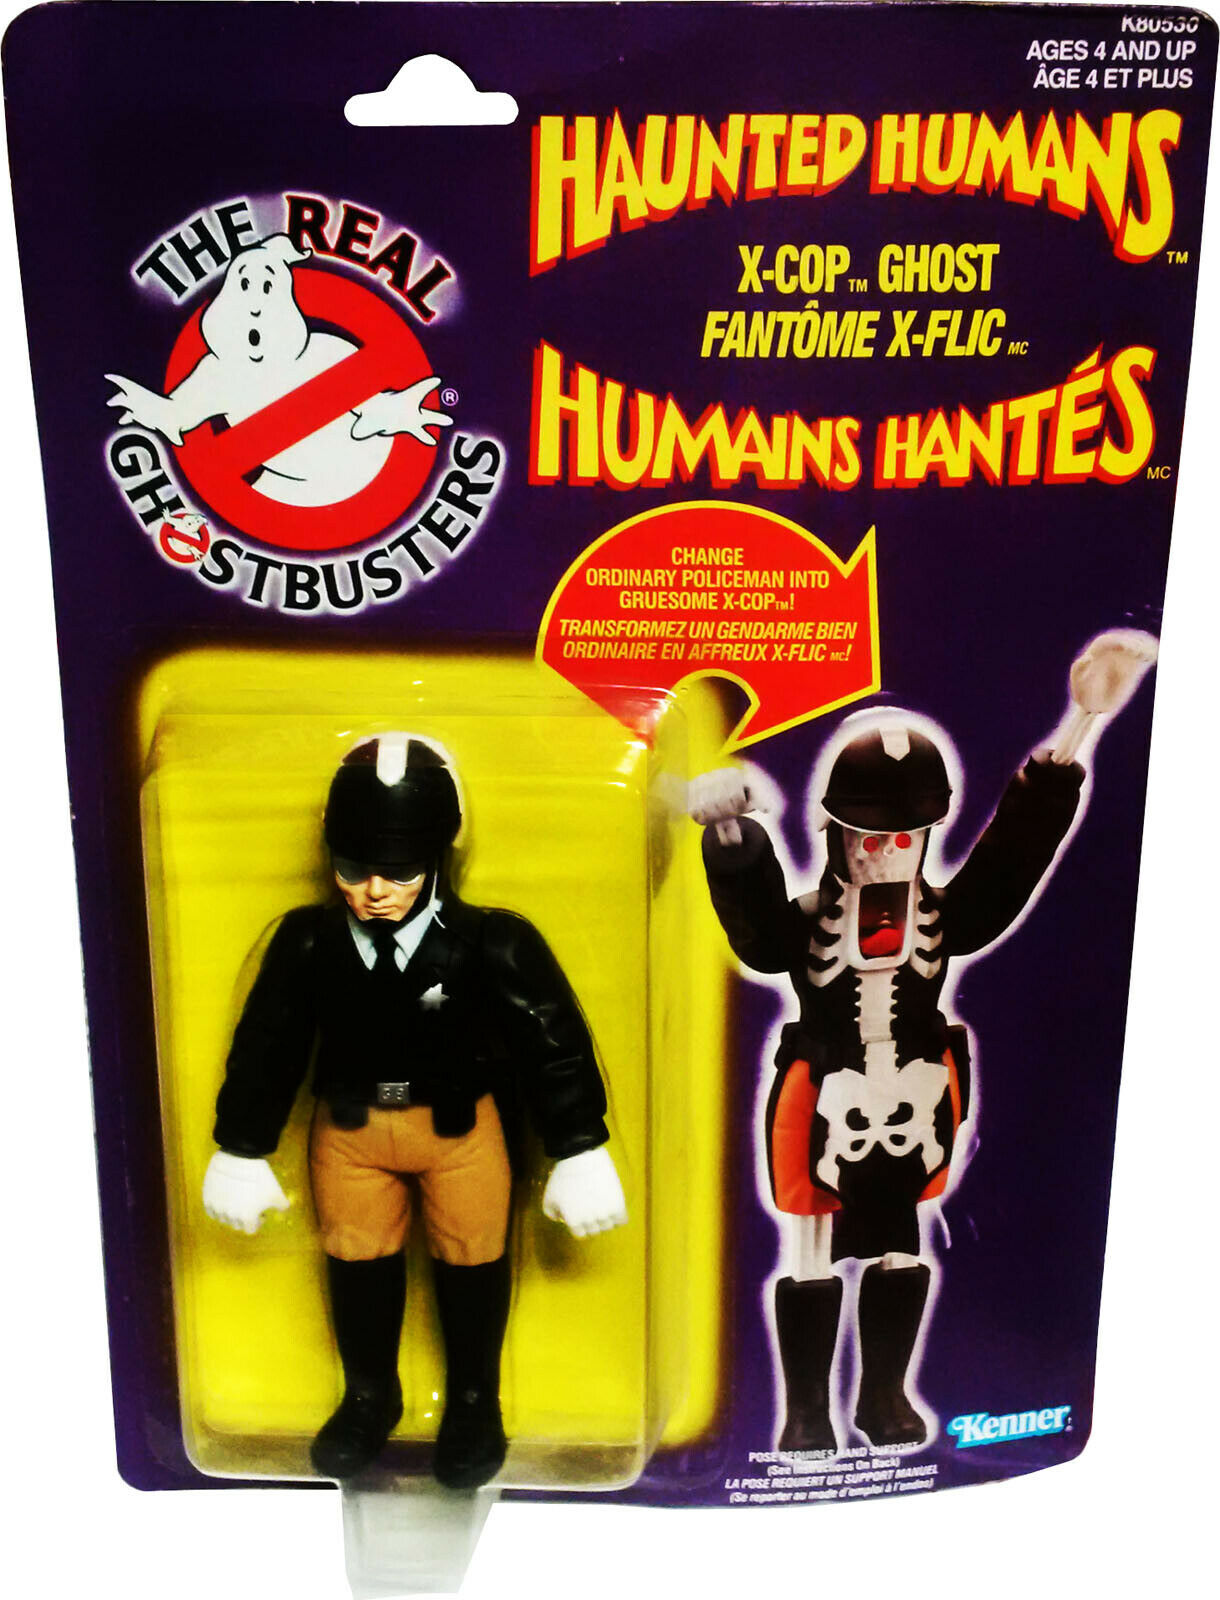 The Real Ghostbusters Haunted Humans X-Cop Ghost, vintage 1986 MOSC